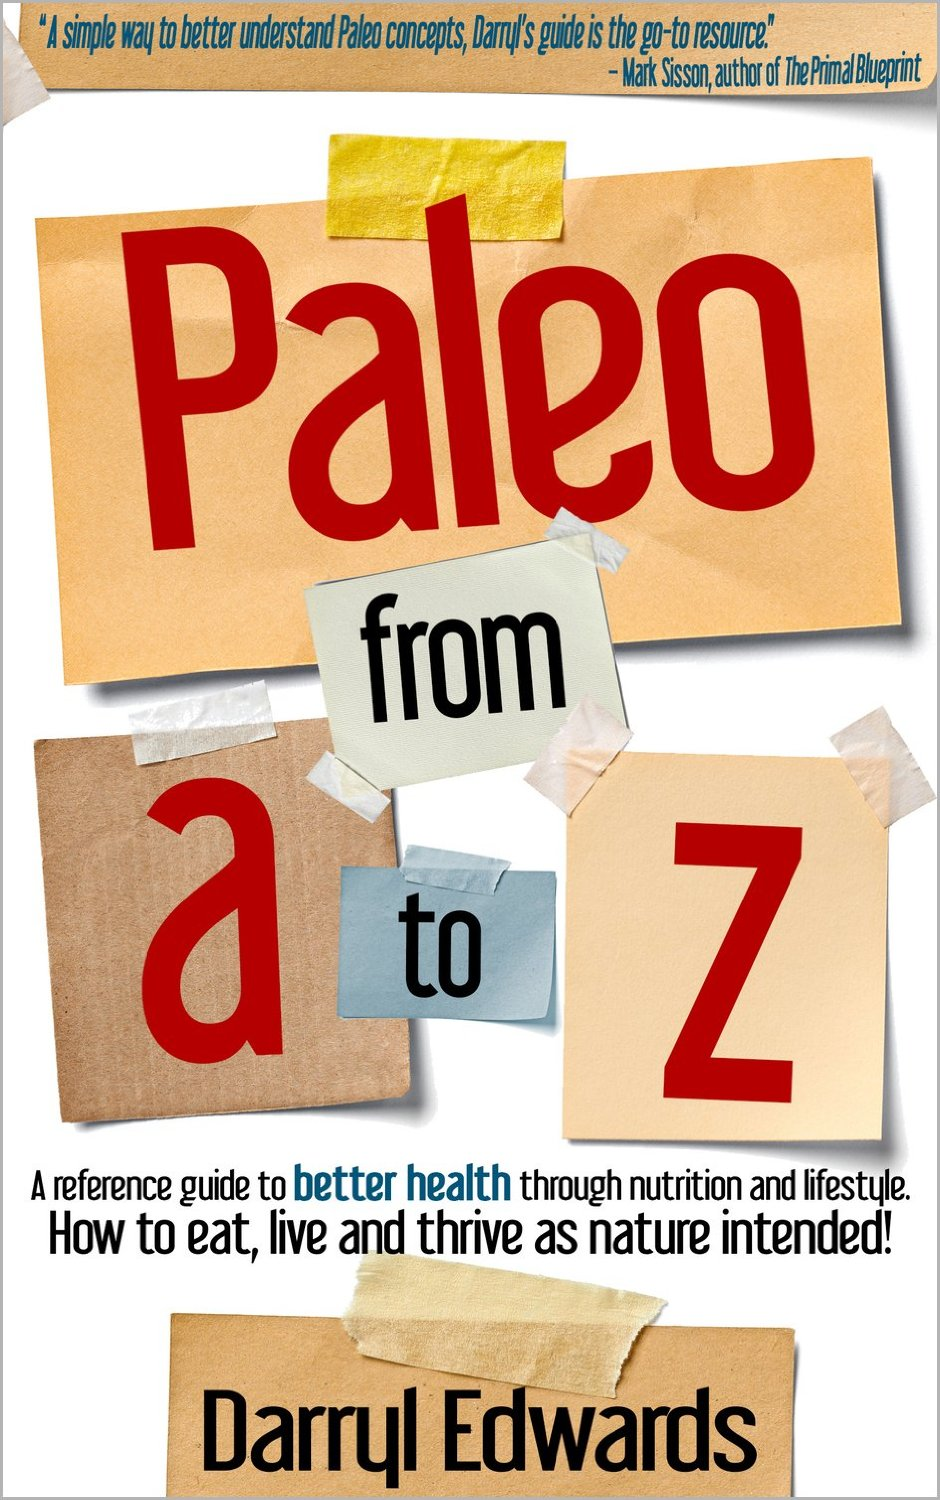 Paleo from a to z new book new trailer darryl edwards the paleo from a to z malvernweather Images